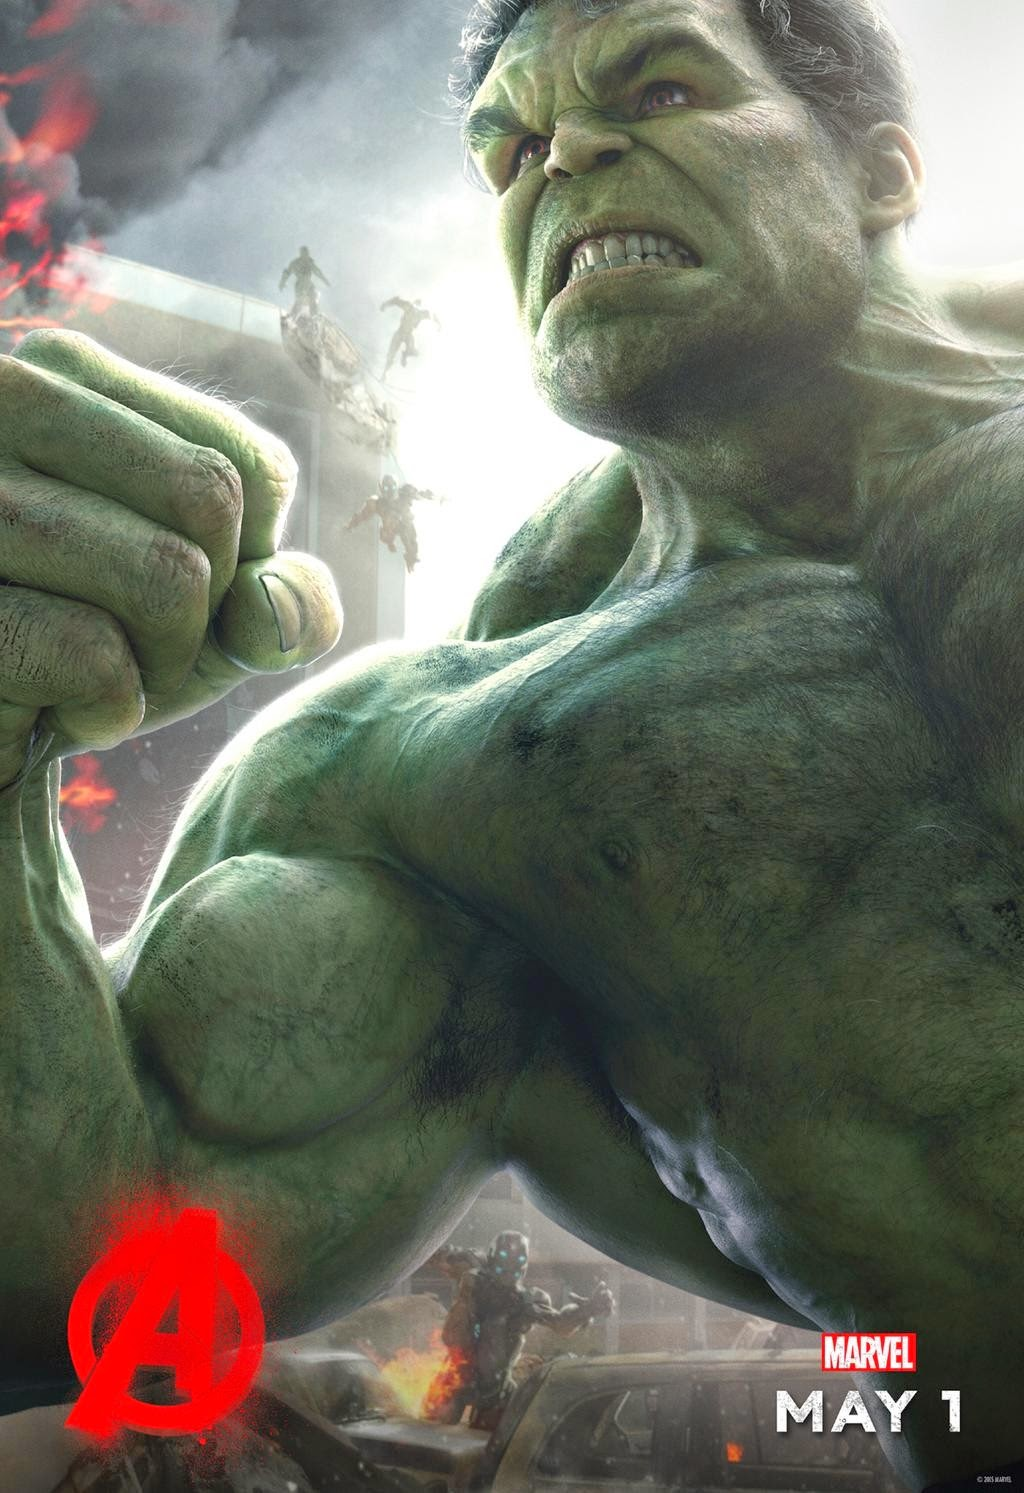 Marvel's Avengers Age of Ultron Character Movie Poster Set - Mark Ruffalo as Hulk